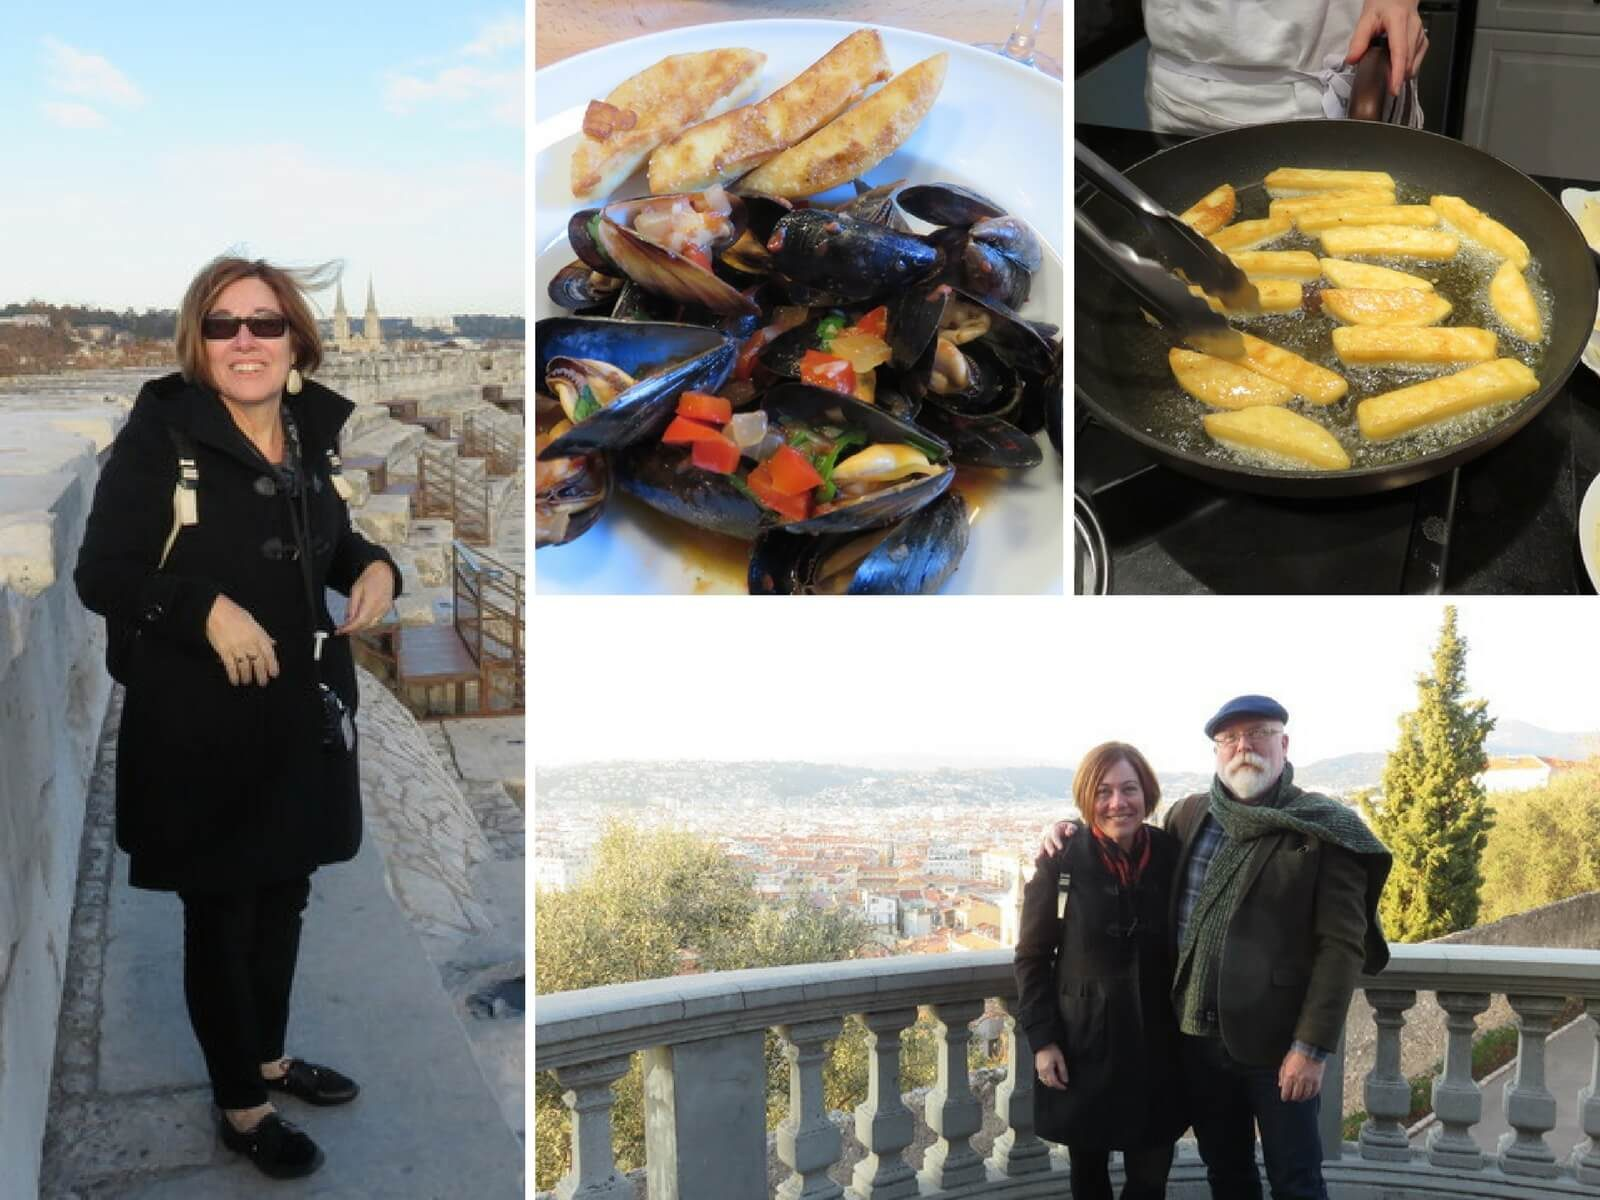 Visiting southern France in winter, Christine Hegerty